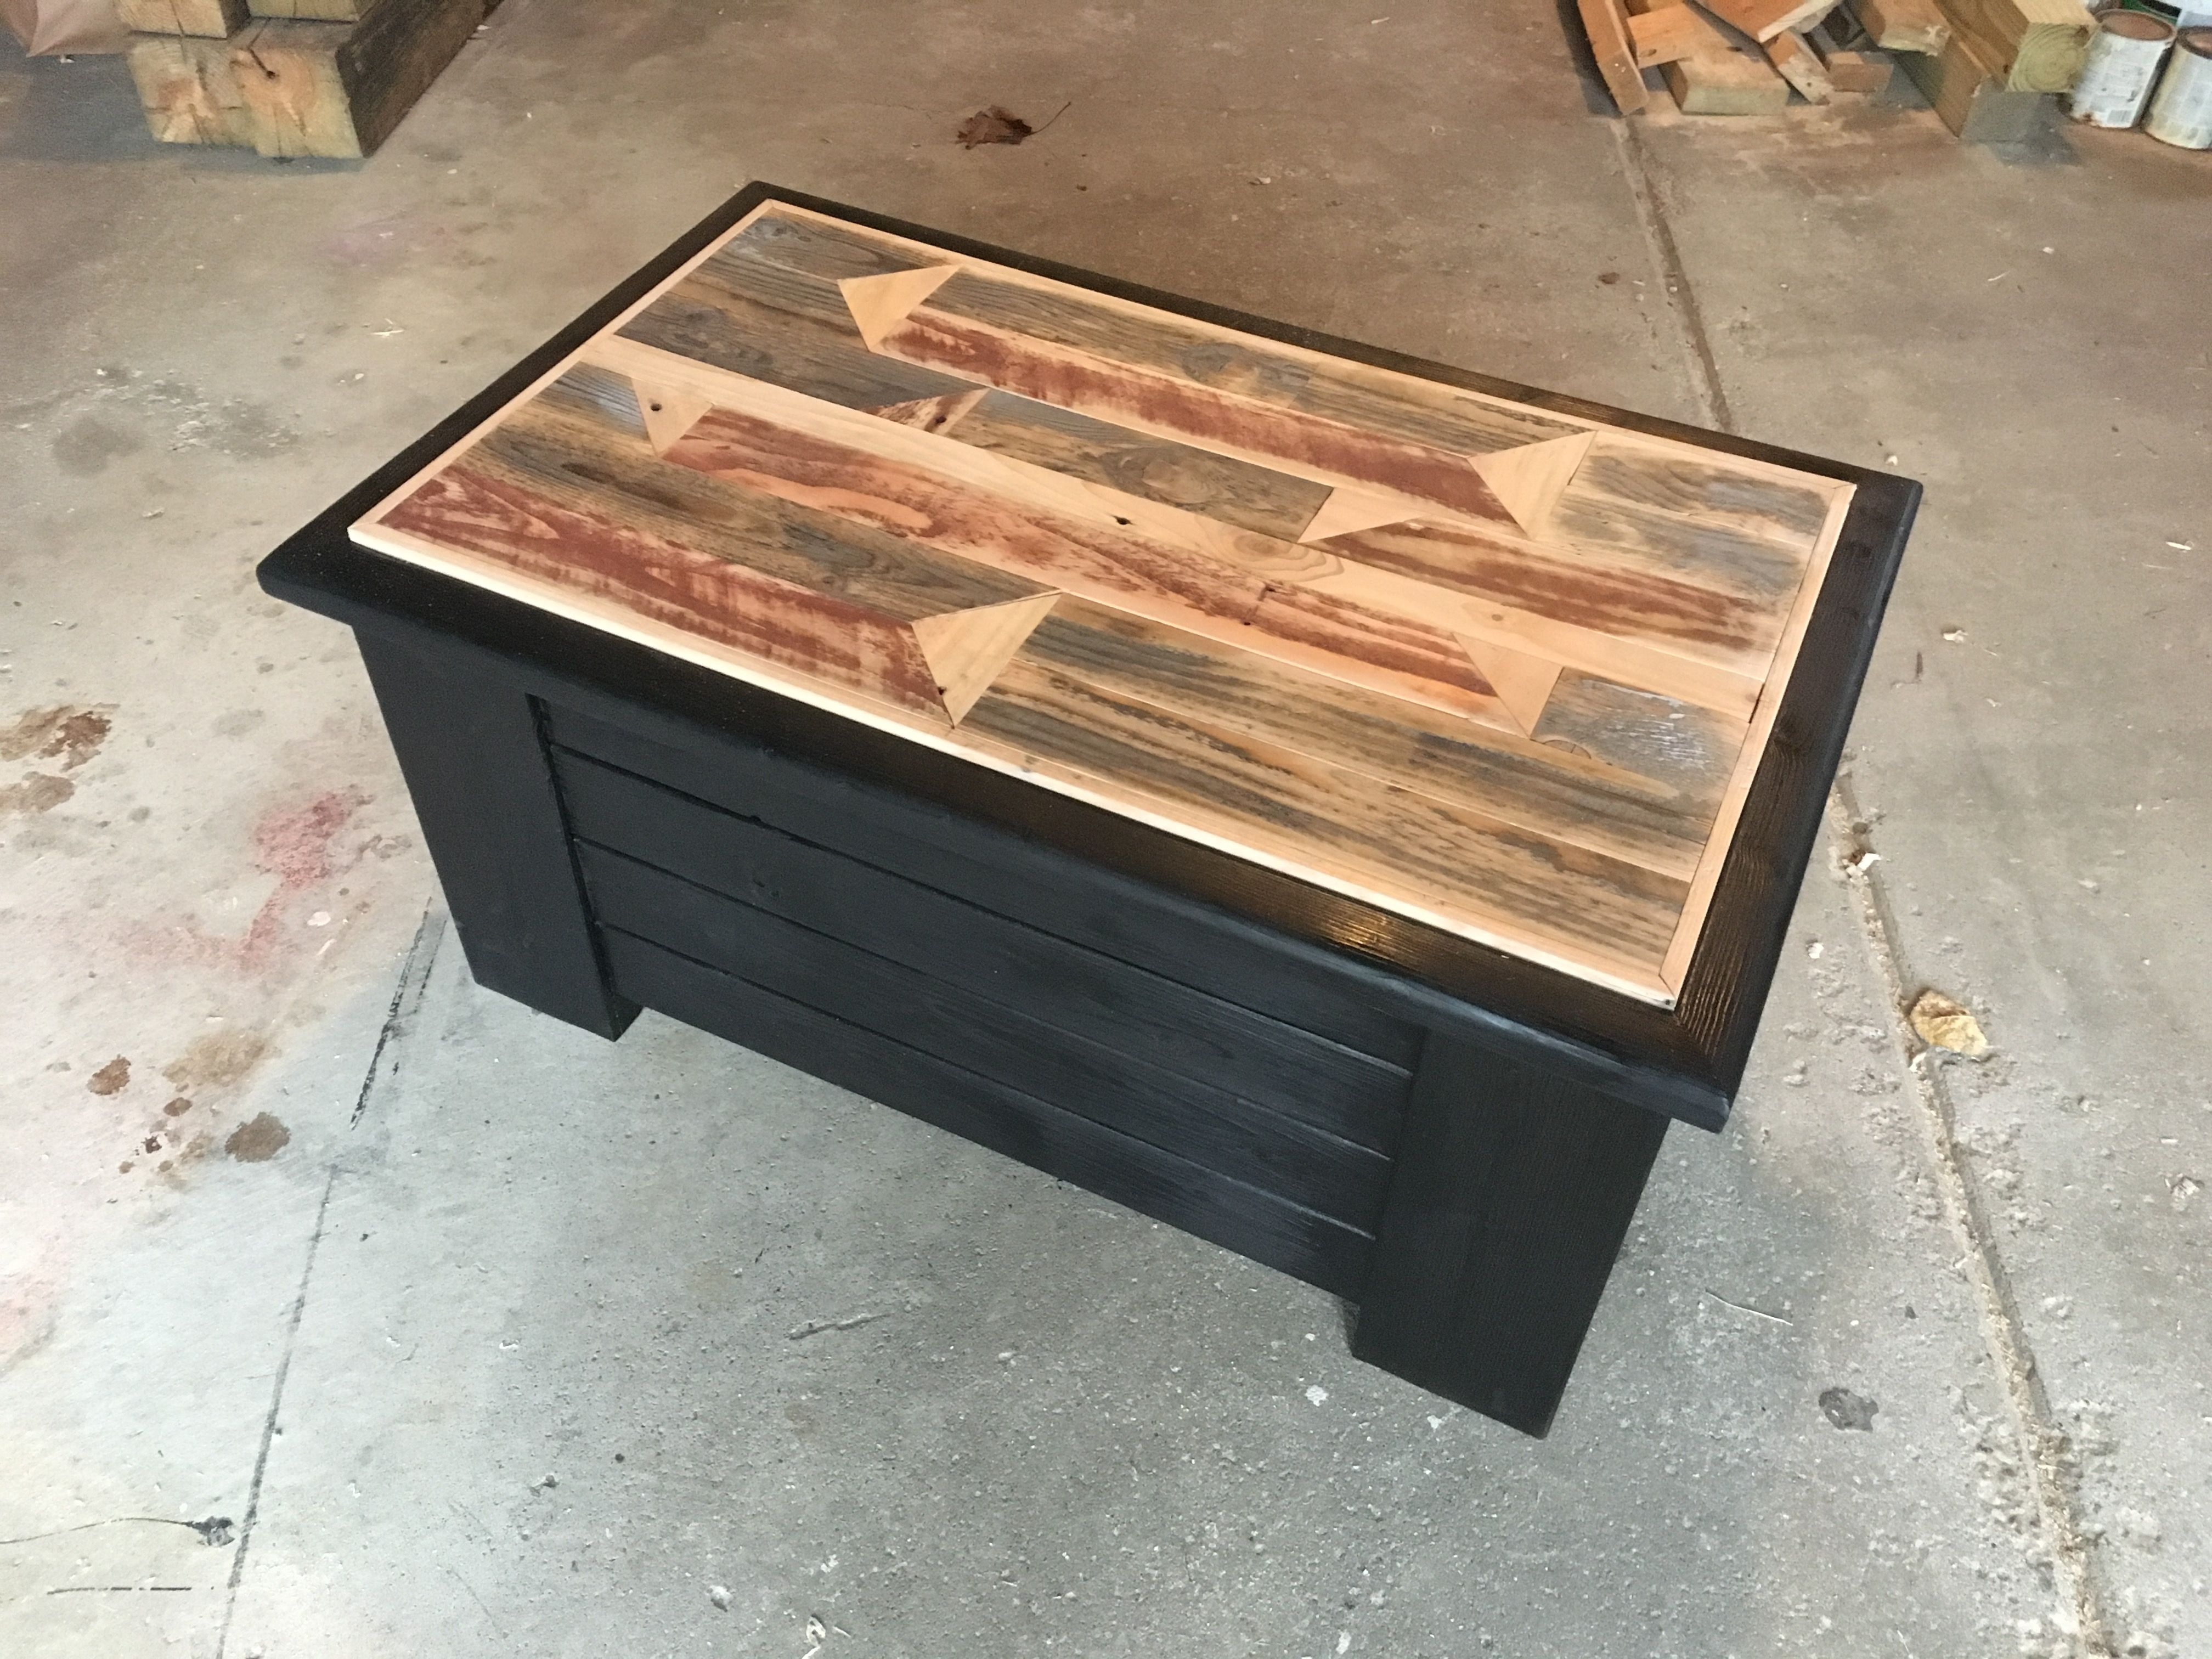 Recycled Pallet Wood On Top Chest Made Of Pine And Burned With Torch To Black Shou Sugi Ban Wood Pallets Recycled Pallet Wood